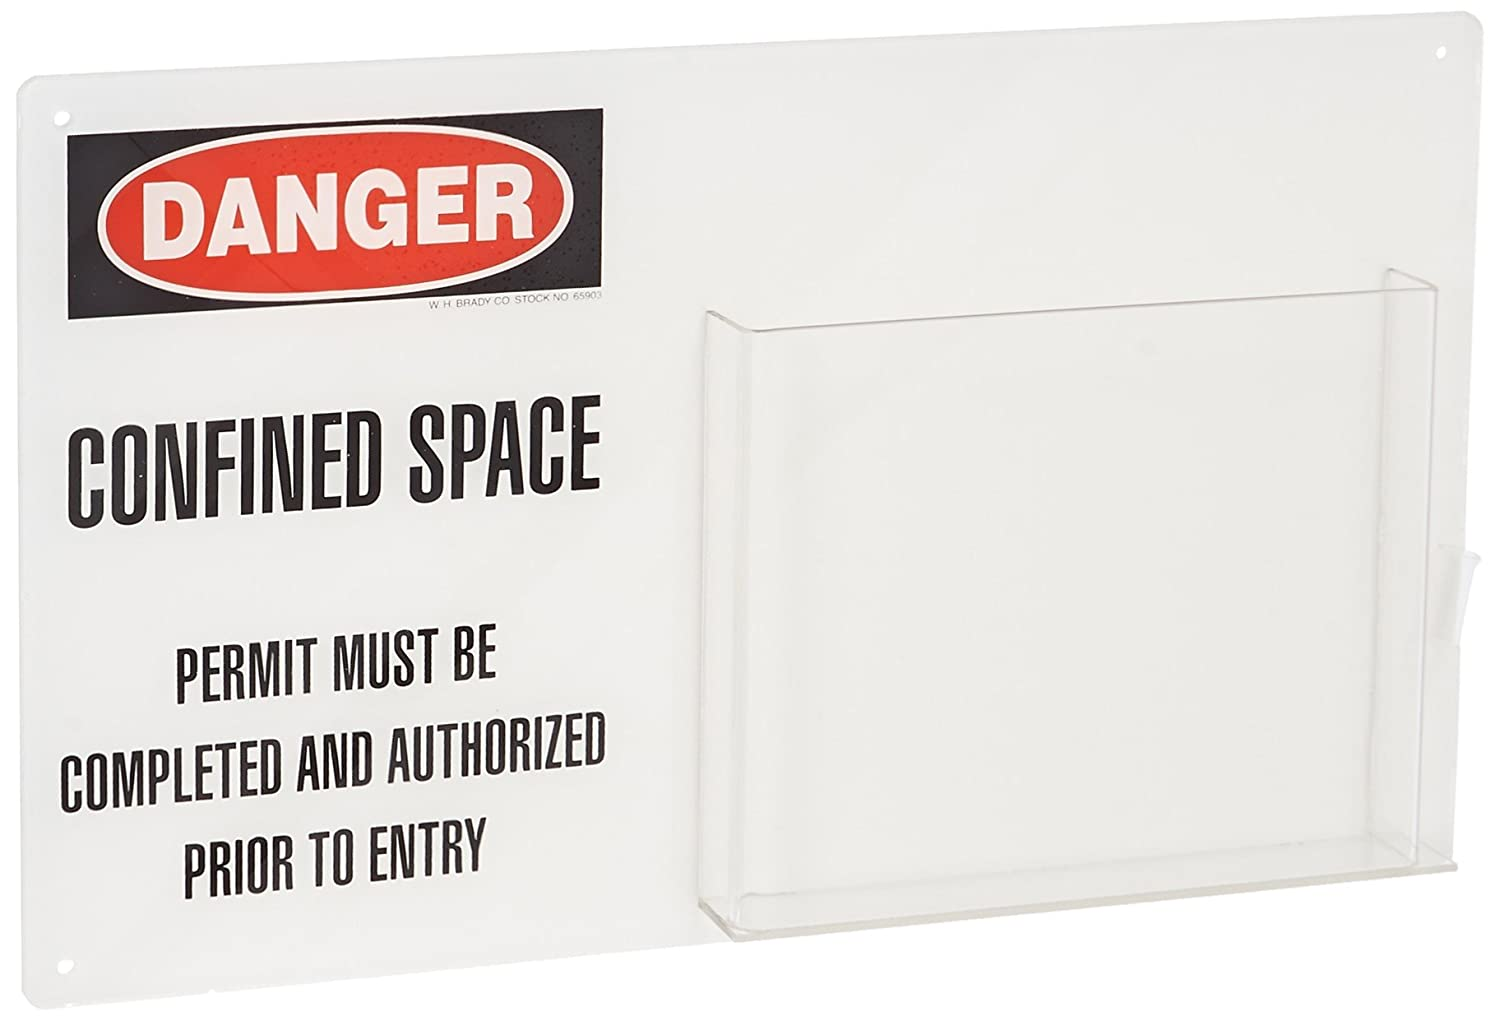 19 Width Legend Danger Confined Space Permit Must Be Completed... Brady 65903 12 Height Polycarbonate Black And Red On White Color Confined Space Sign//Permit Holder